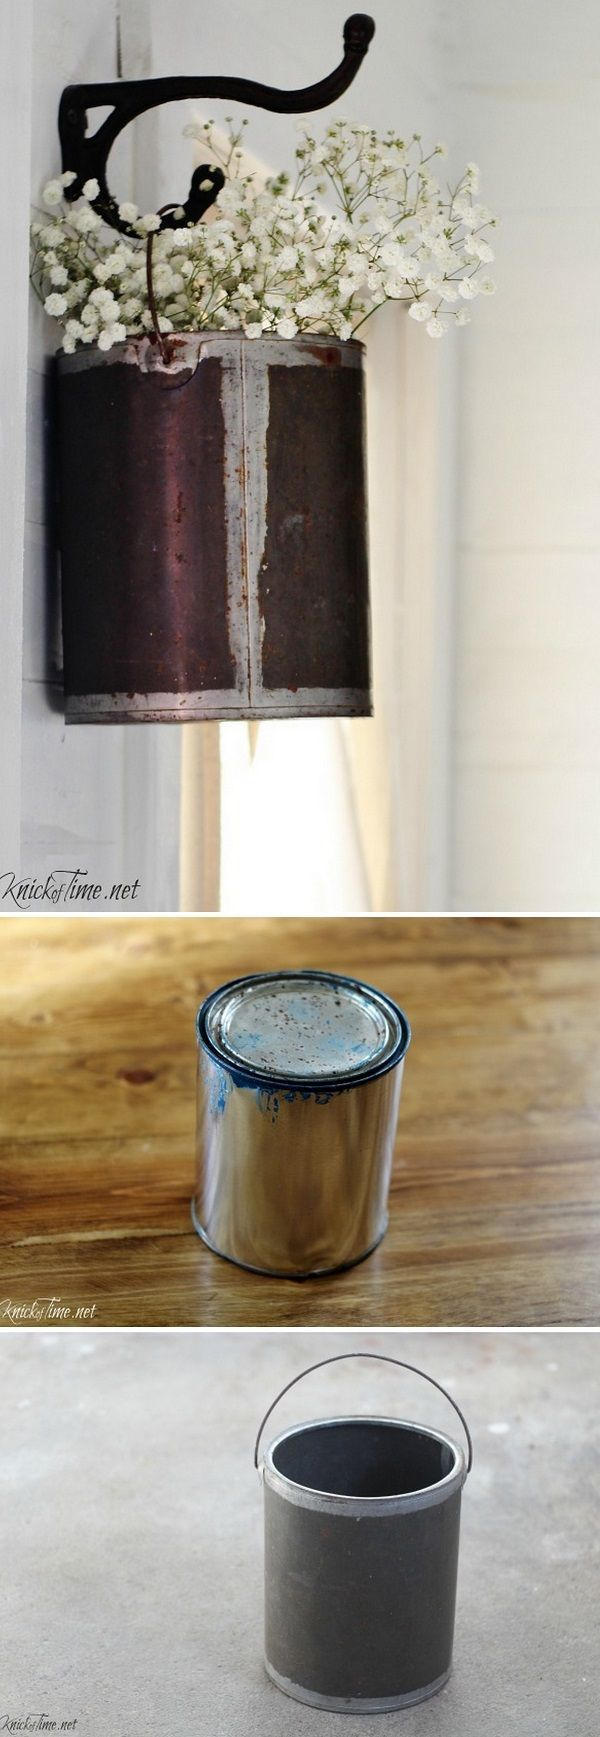 Check out this easy idea on how to repurpose a paint can to a #DIY #farmhouse style flower planter #homedecor #rustic #project @istandarddesign